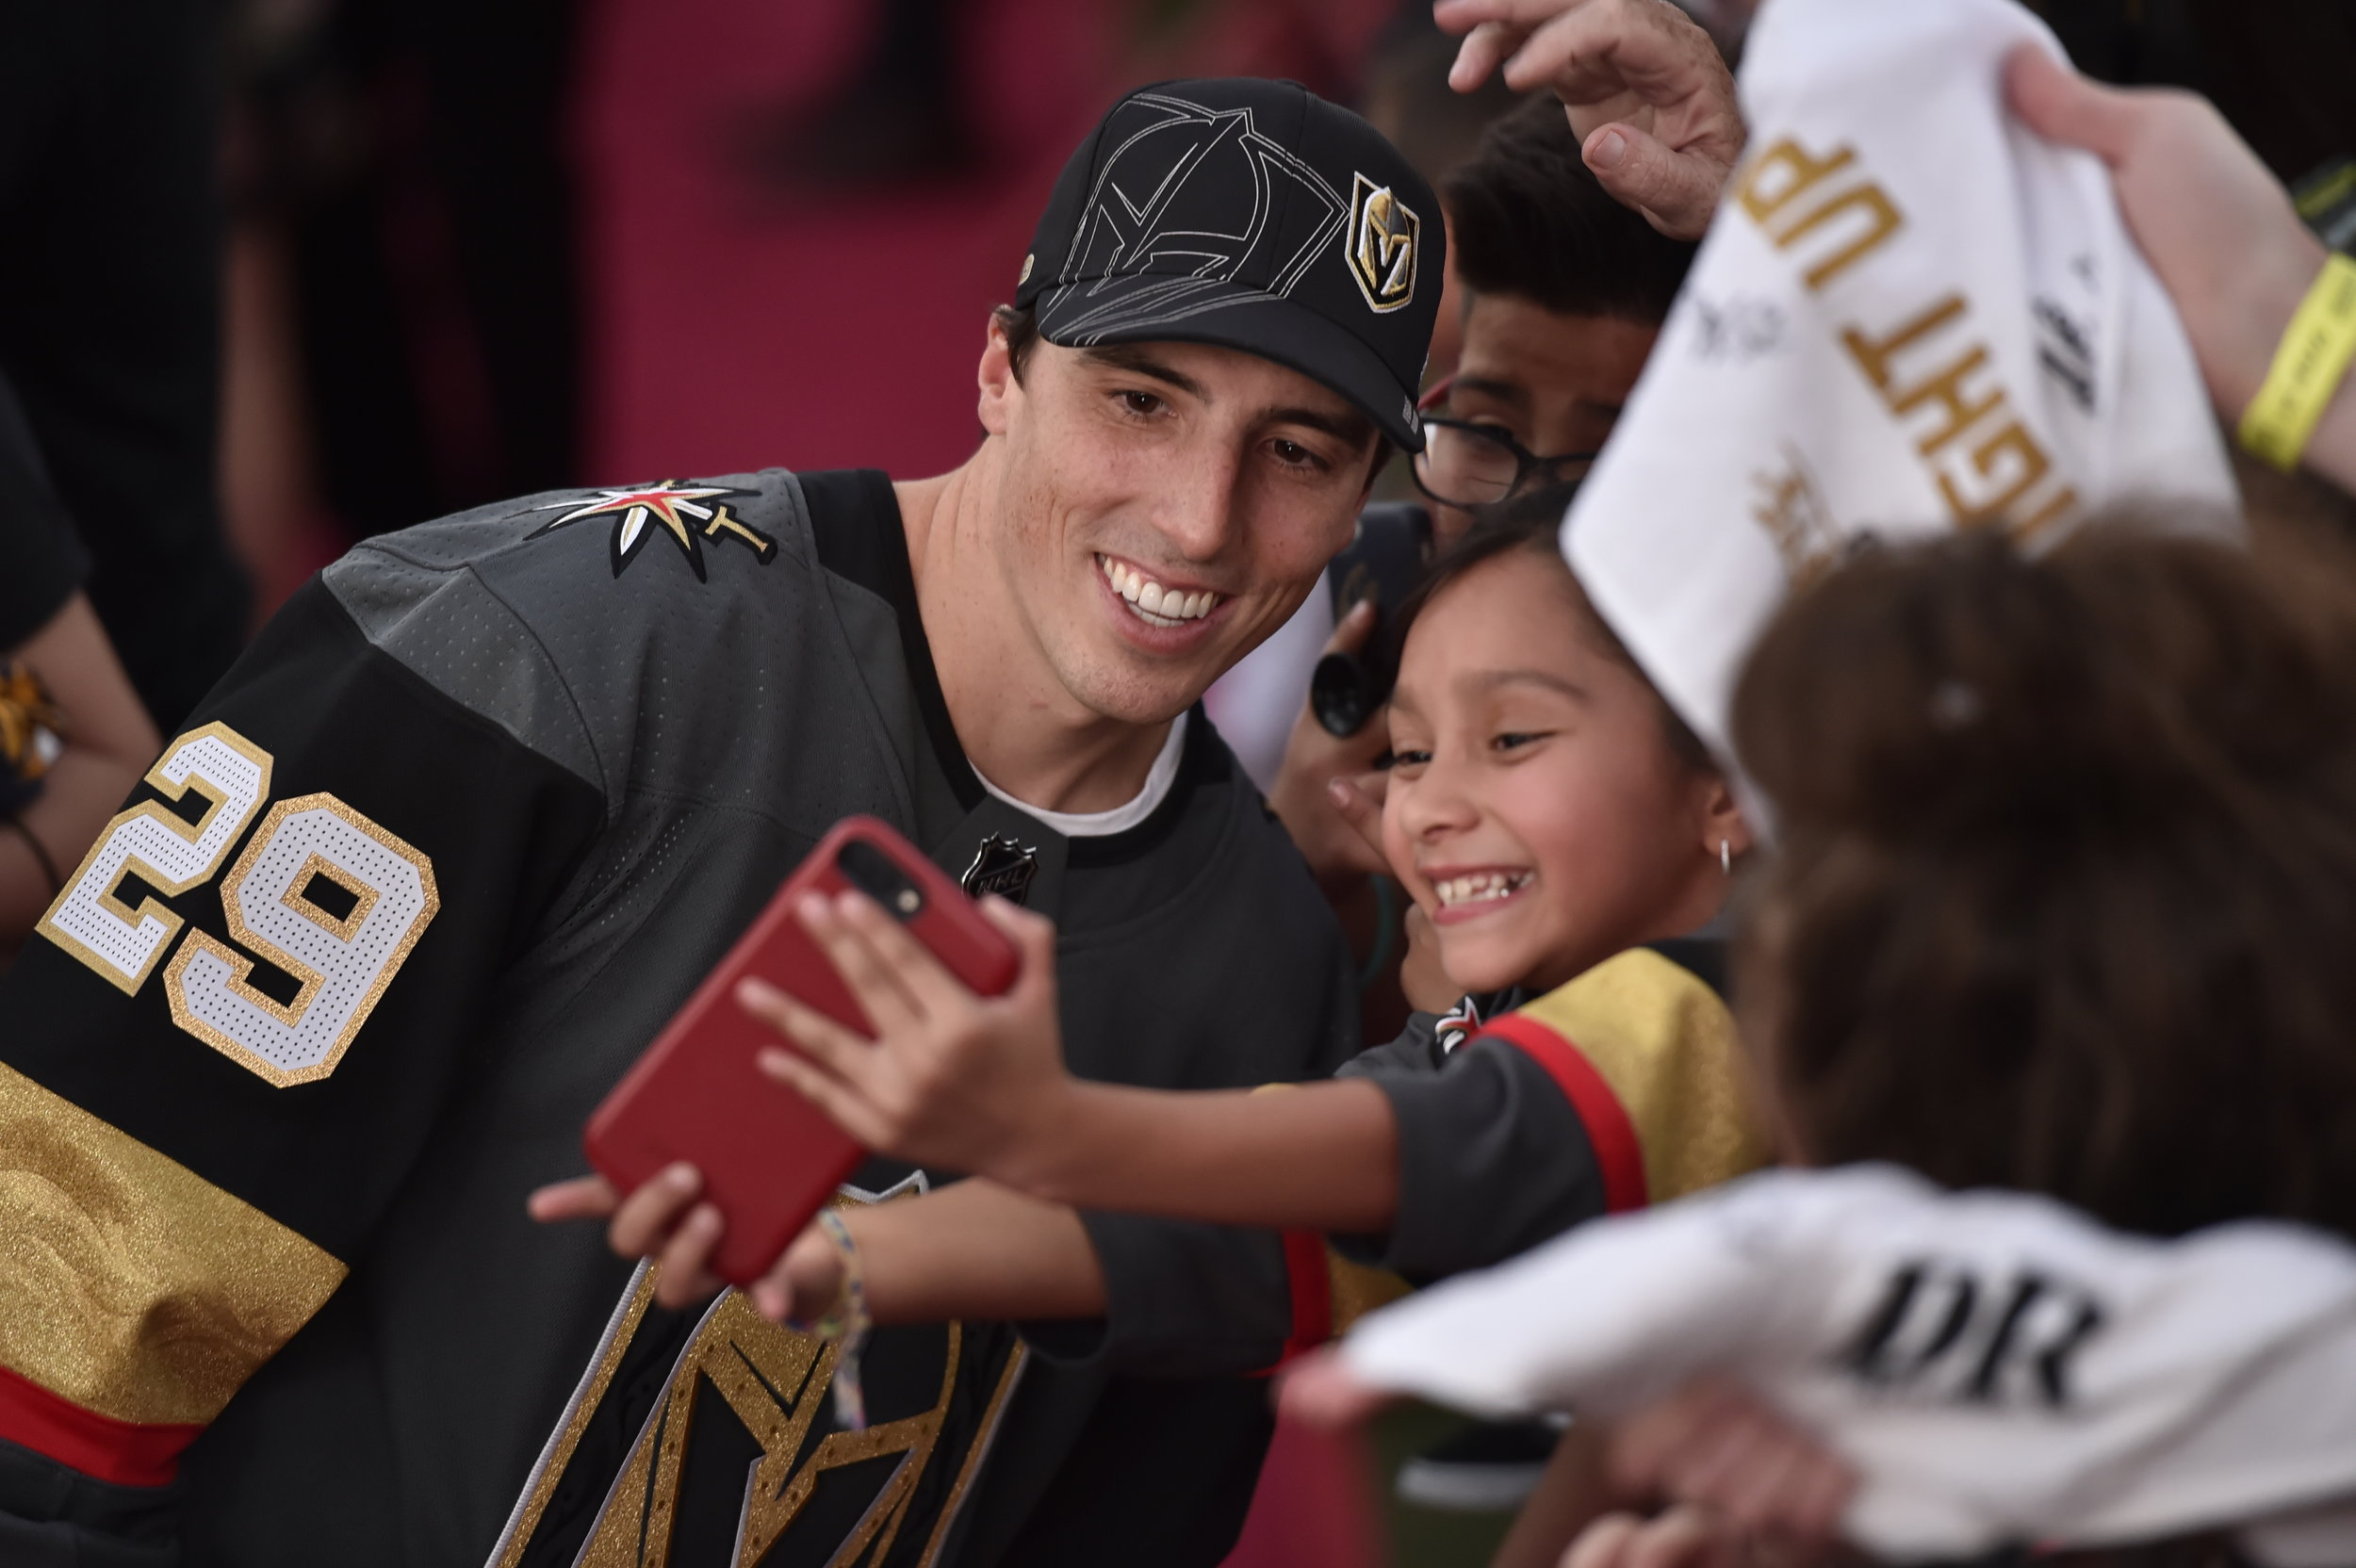 d5d2dc67359 VGK Lifestyle. All tagged Merchandise. Marc-Andre Fleury Ranks Third in NHL  Jersey Sales for 2018-19 Season